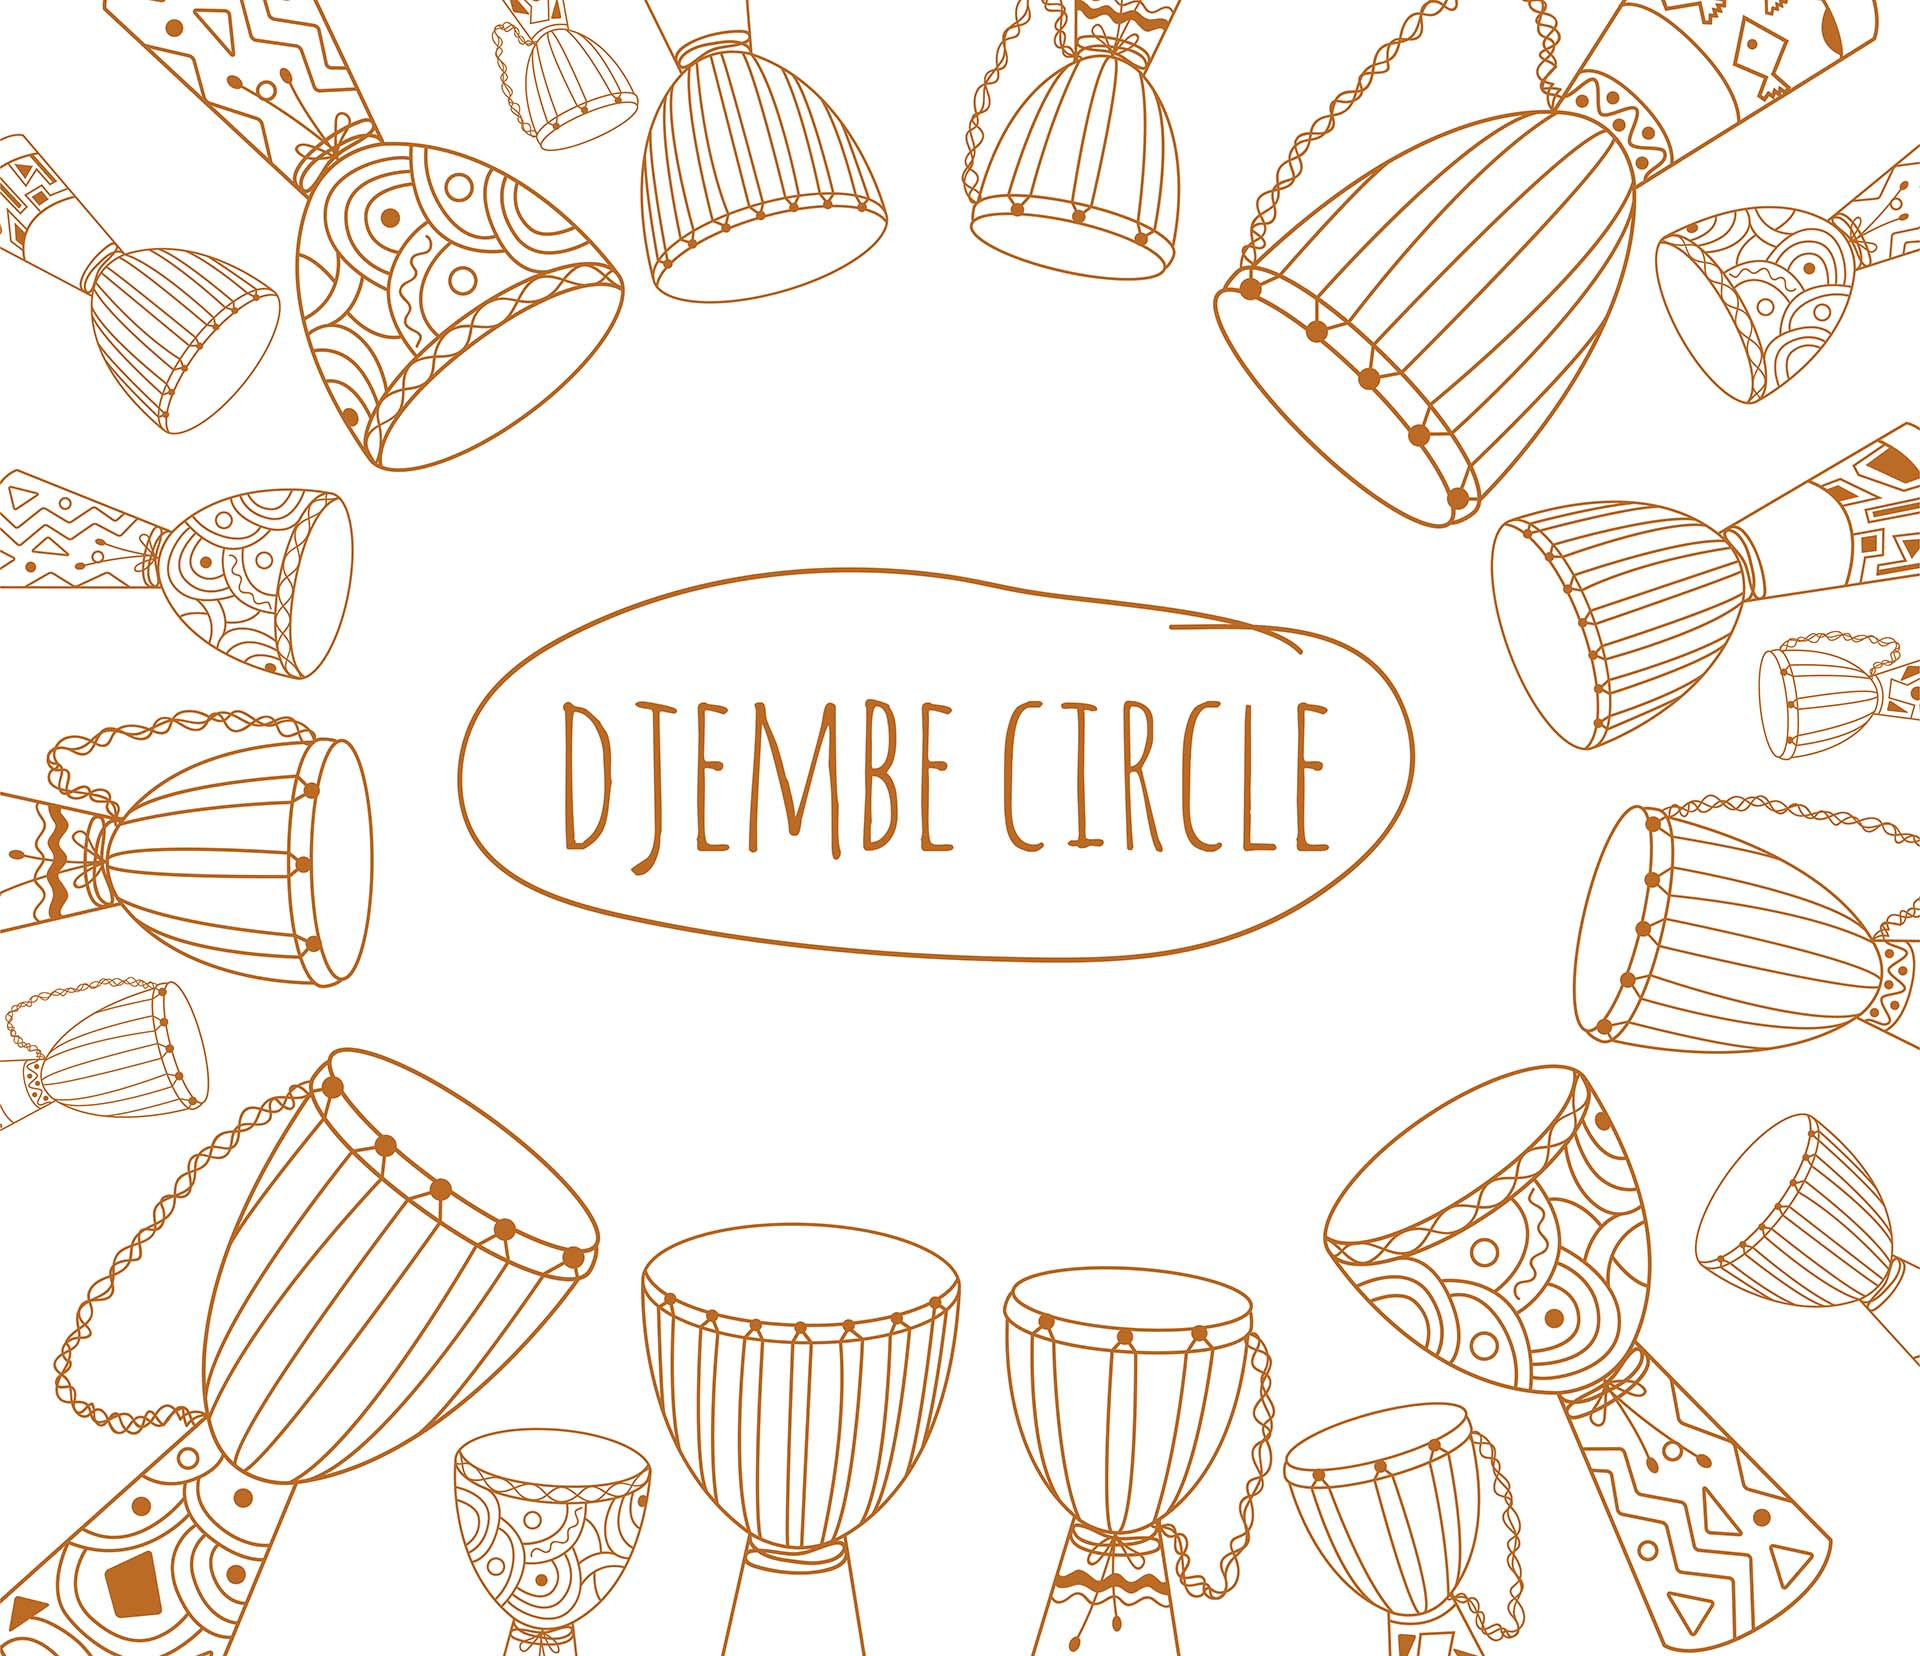 Drums clipart drum circle, Drums drum circle Transparent.